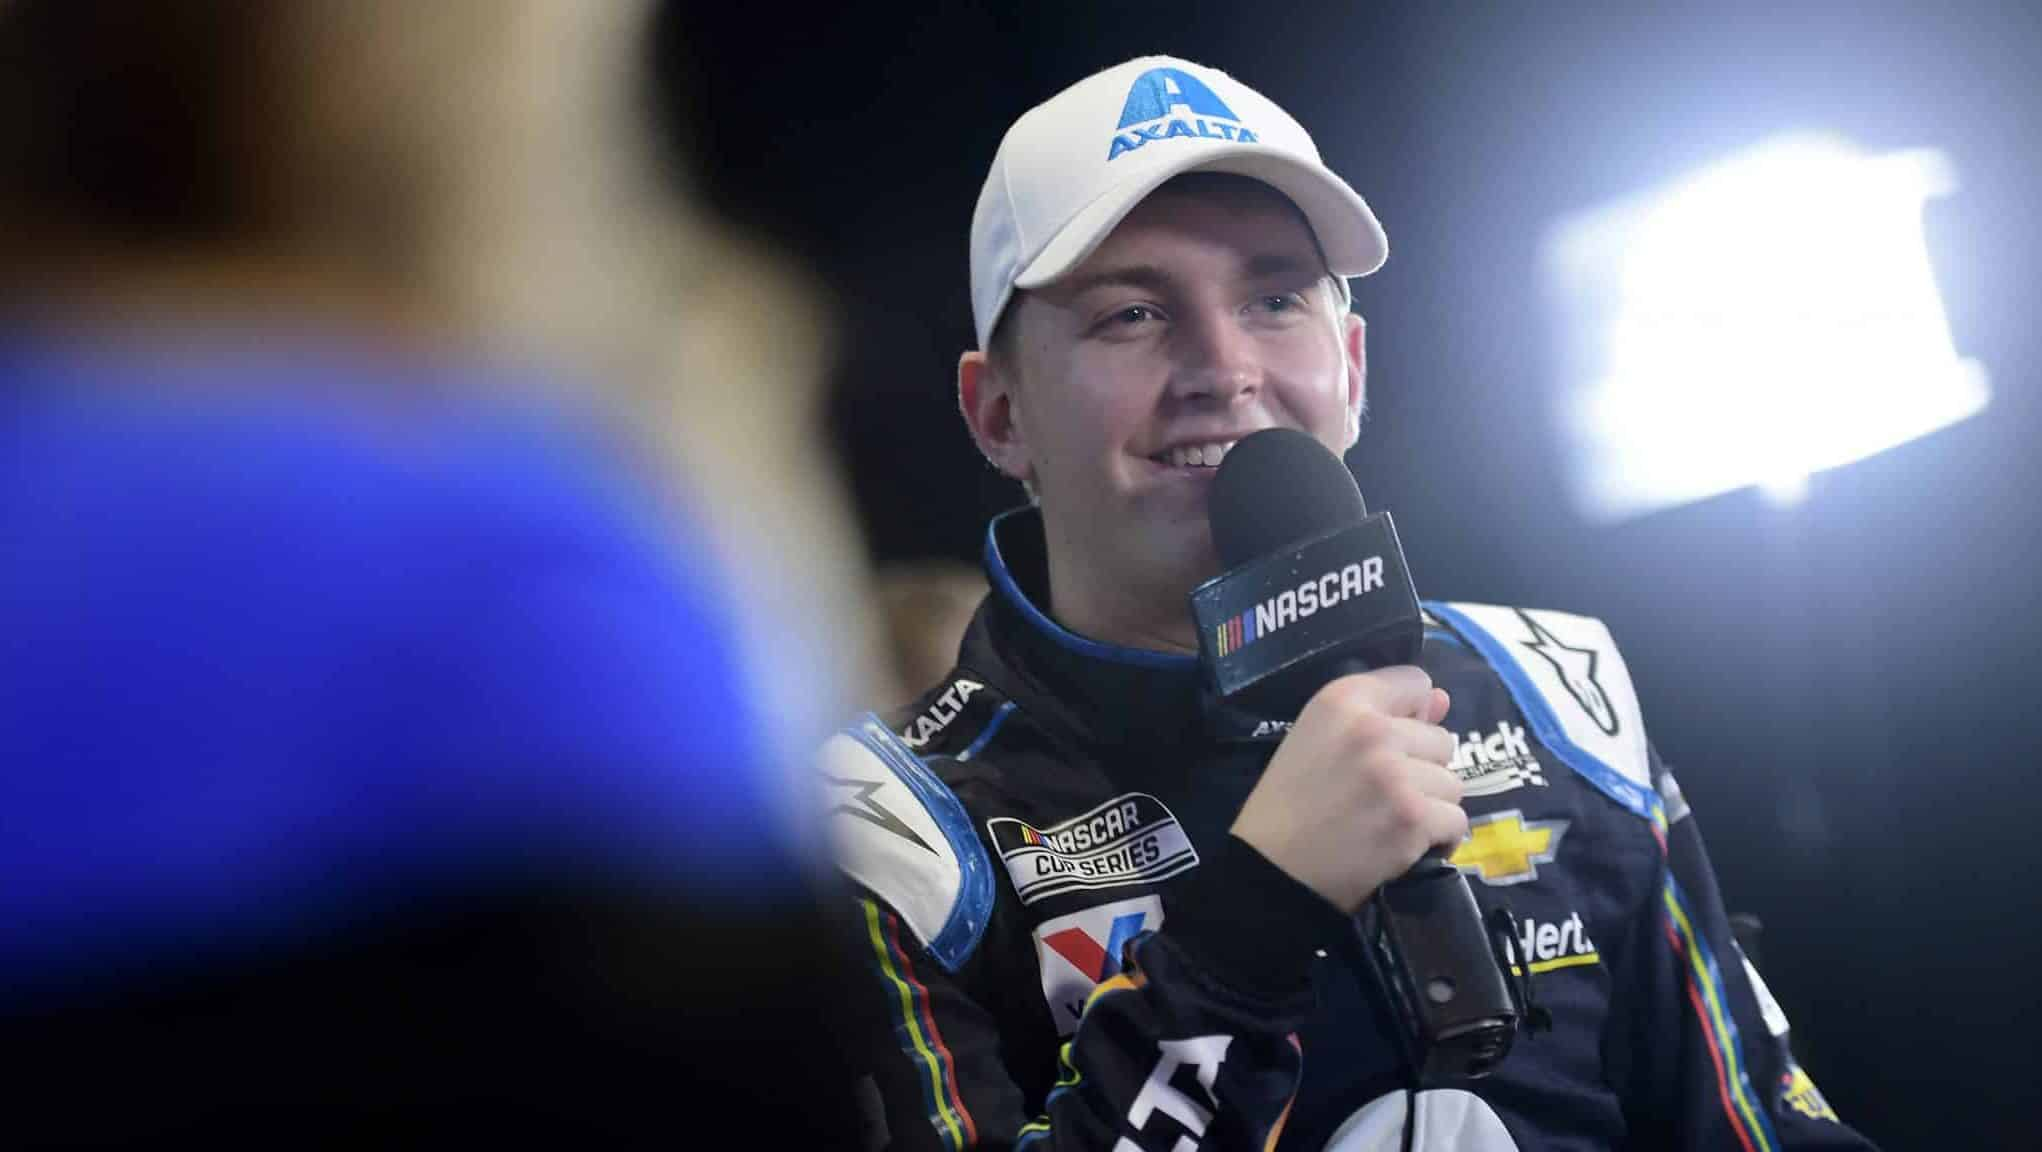 DAYTONA BEACH, FLORIDA - FEBRUARY 12: William Byron, driver of the #24 Axalta 'Color of the Year' Chevrolet, speaks with the media during the NASCAR Cup Series 62nd Annual Daytona 500 Media Day at Daytona International Speedway on February 12, 2020 in Daytona Beach, Florida.